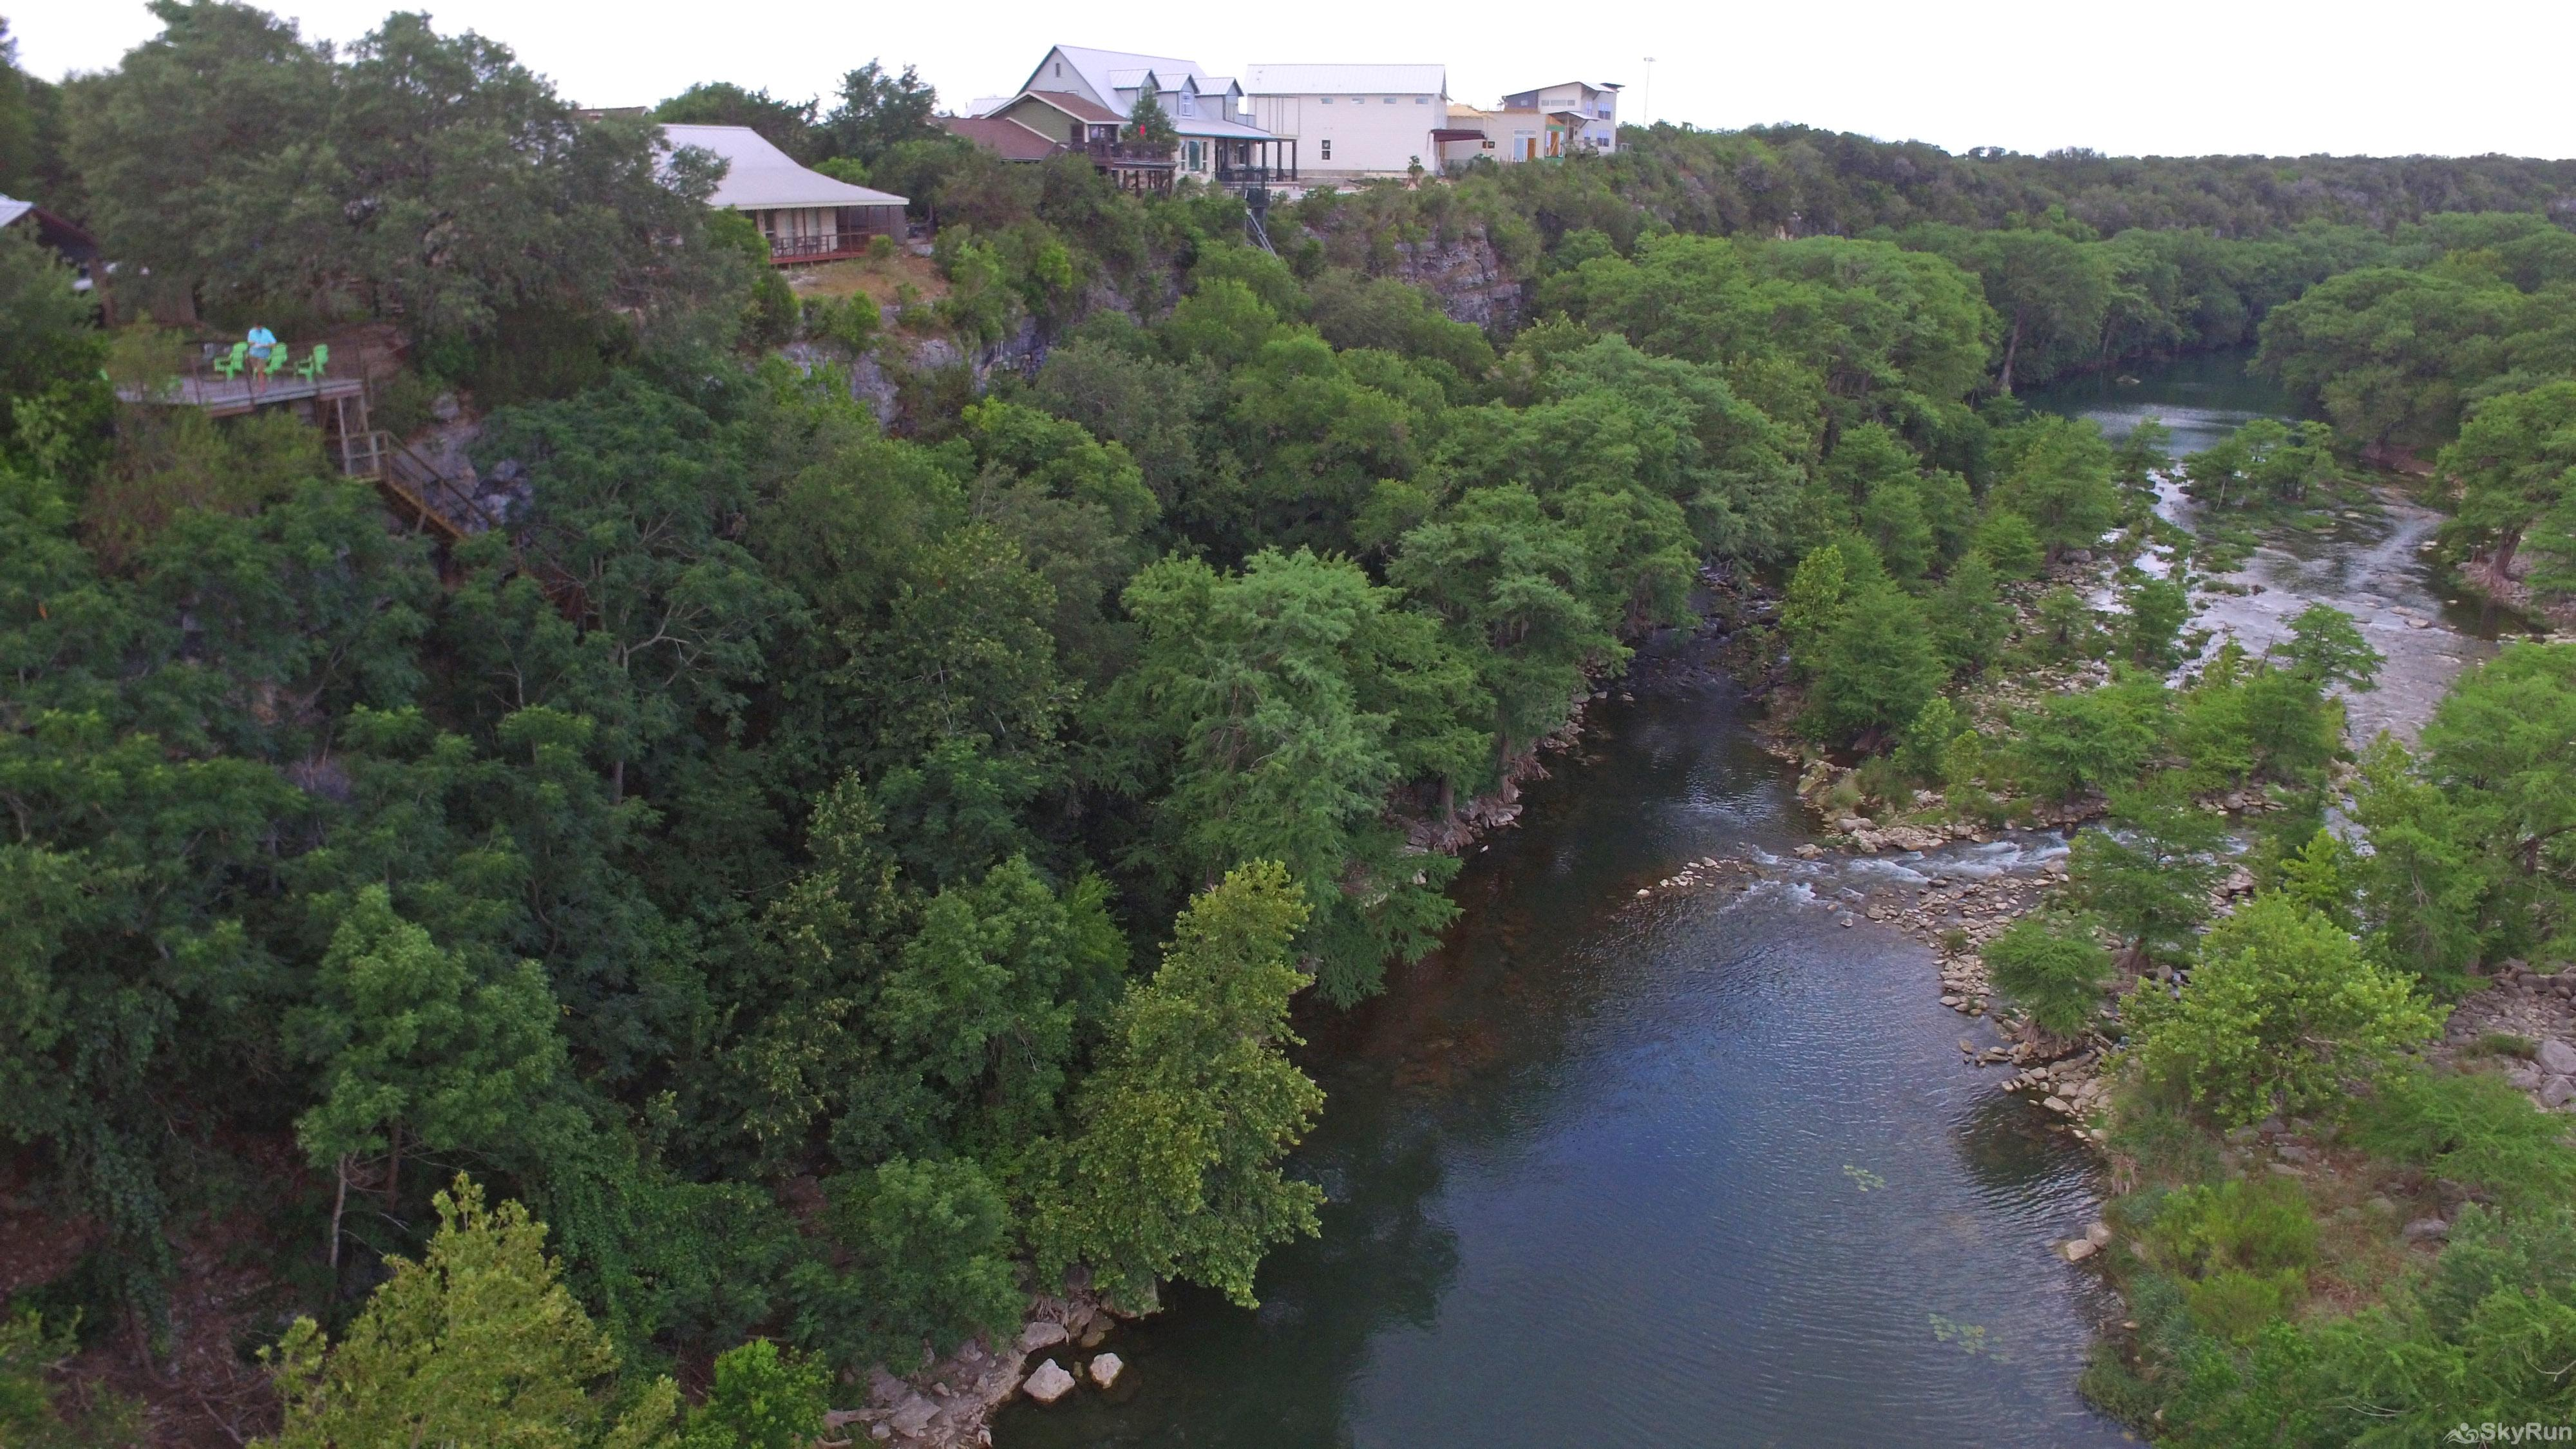 GRUENE VISTA ON THE GUADALUPE Guadalupe River with Gruene Vista's Deck on Left Side Bank